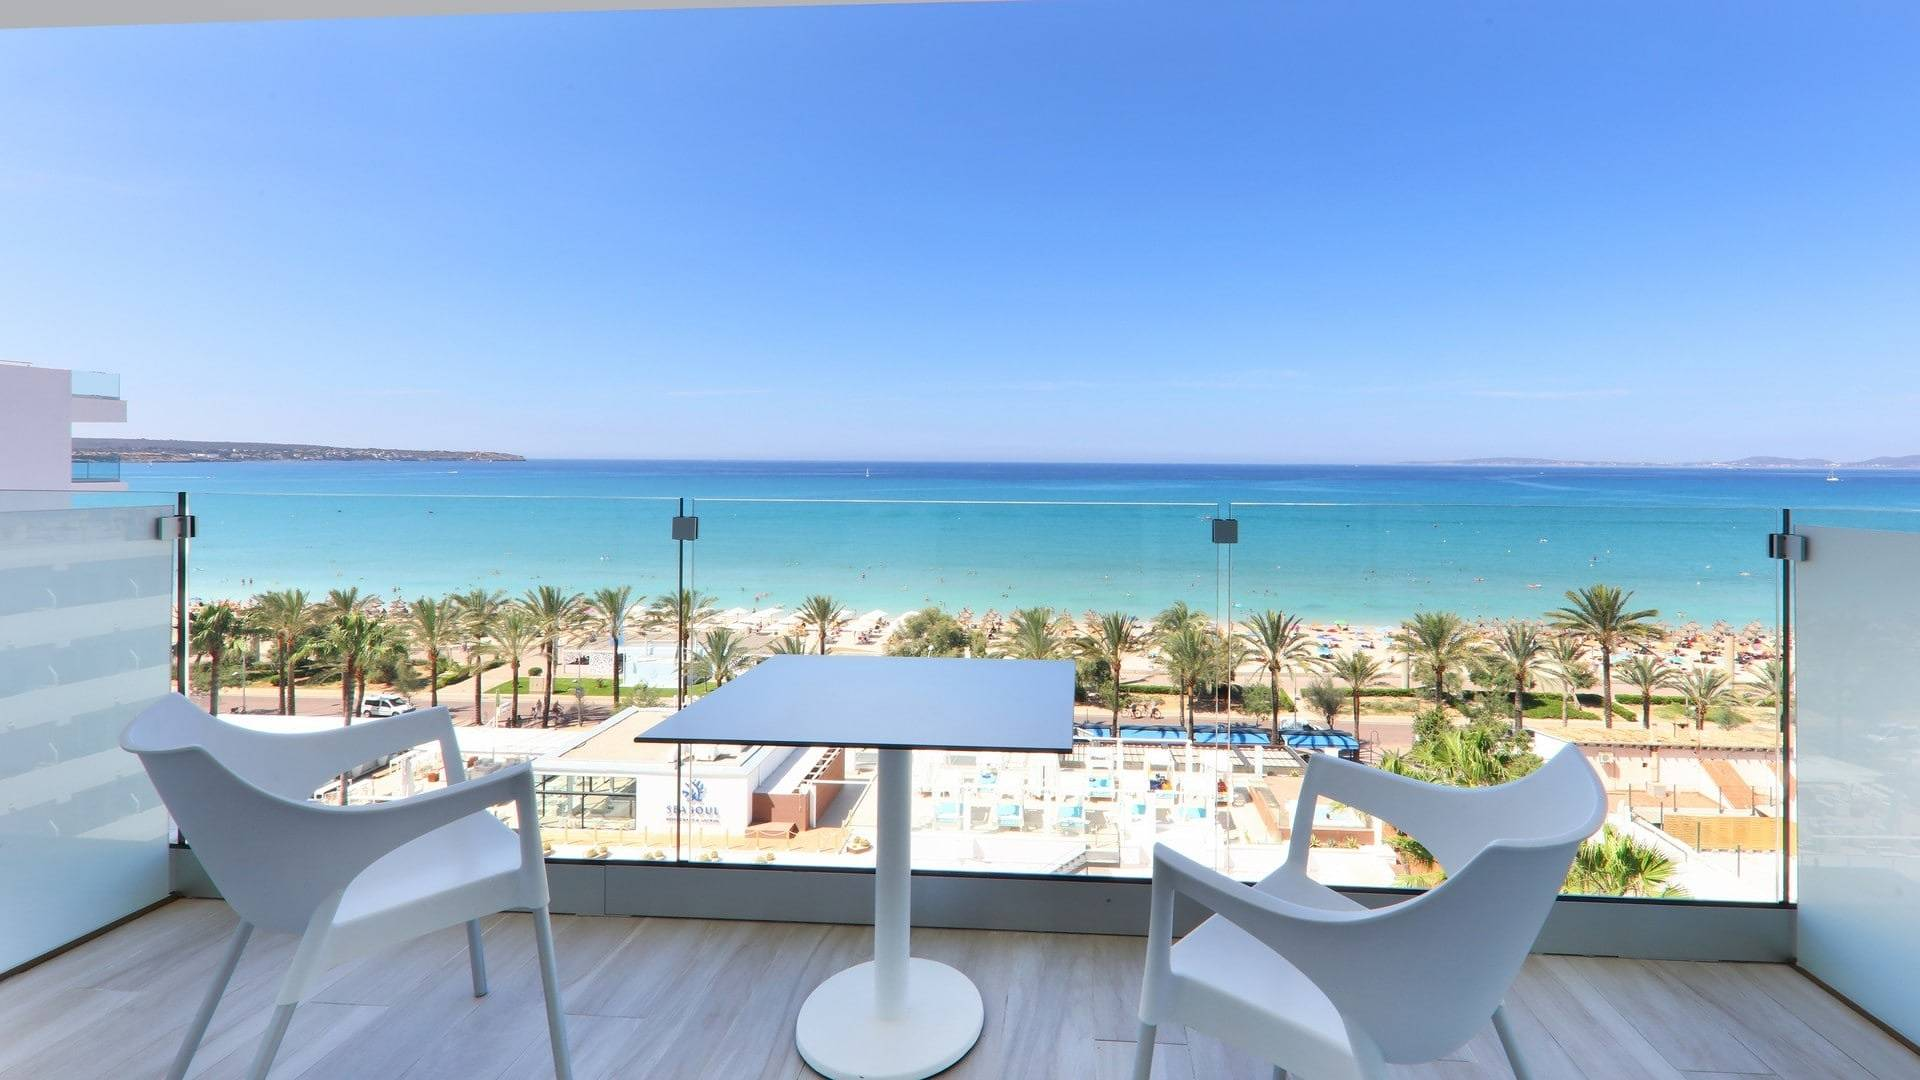 Copyright 169 2017 the design co all rights reserved - From 169 3nt 5 Half Board Luxury Majorca Beach Escape Dealchecker 2017